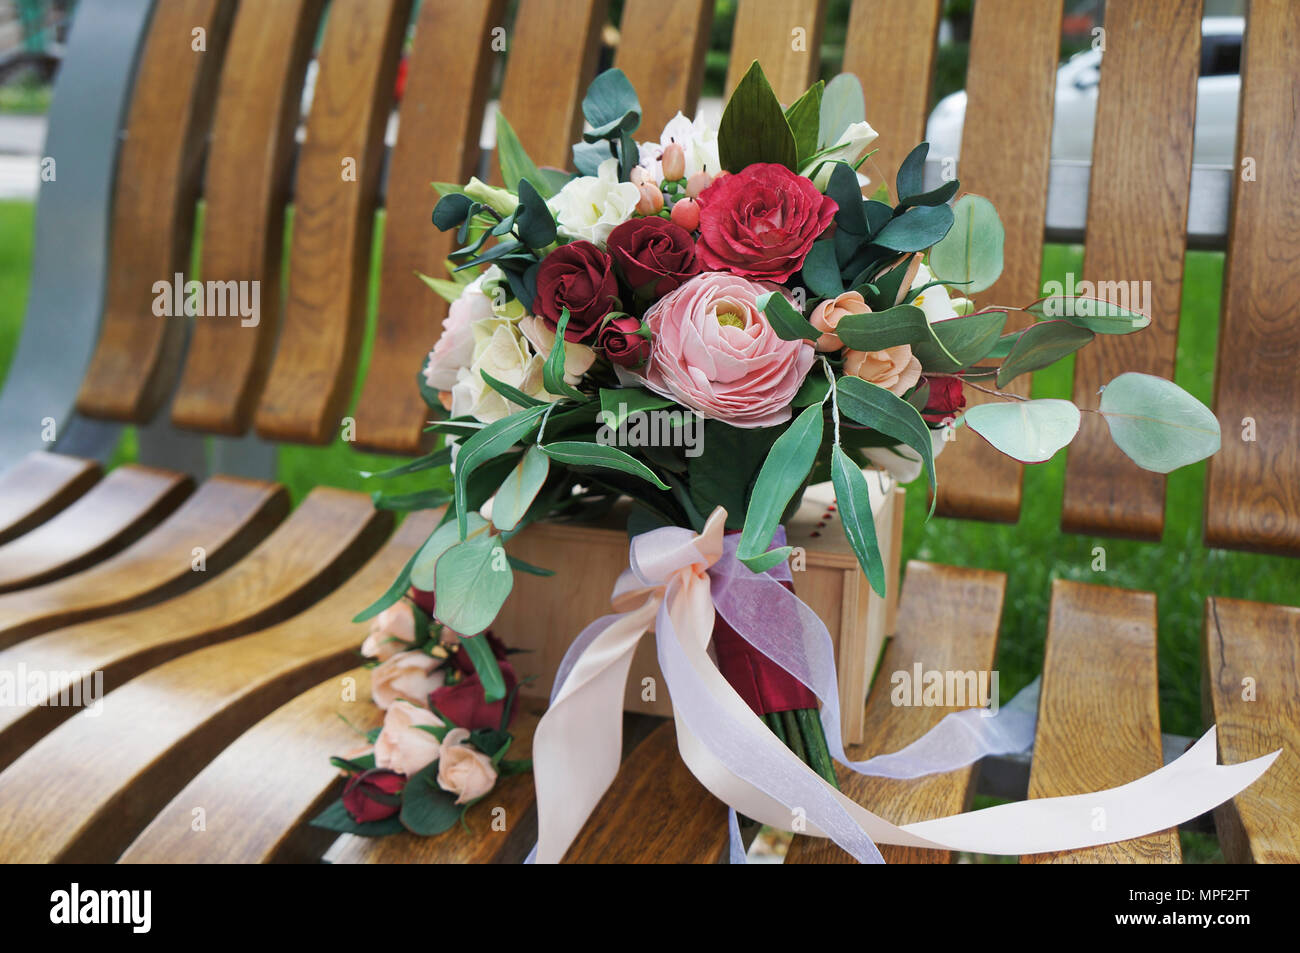 Artificial flowers made from sponge rubber. Bouquet for the bride. Foam-iran. Beautiful colorful wedding bouquet. Handmade flower fabric foamiran. - Stock Image